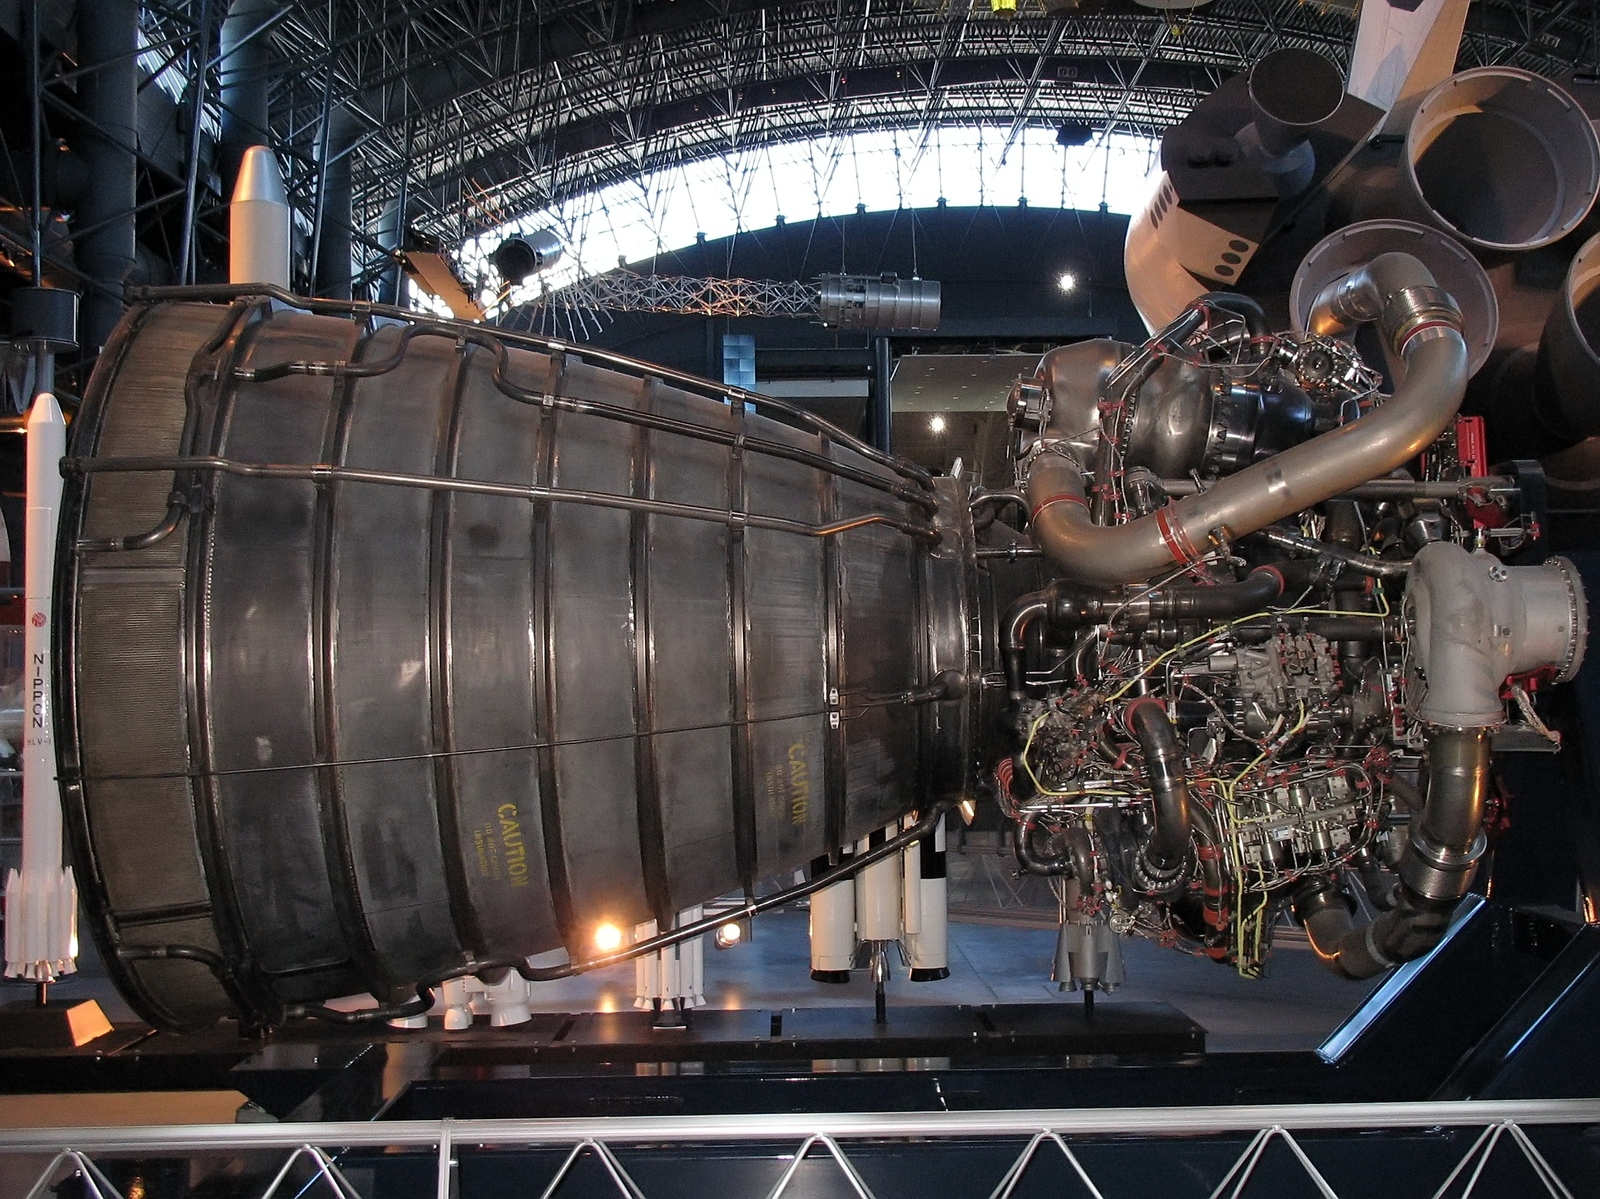 space shuttle engine - photo #20